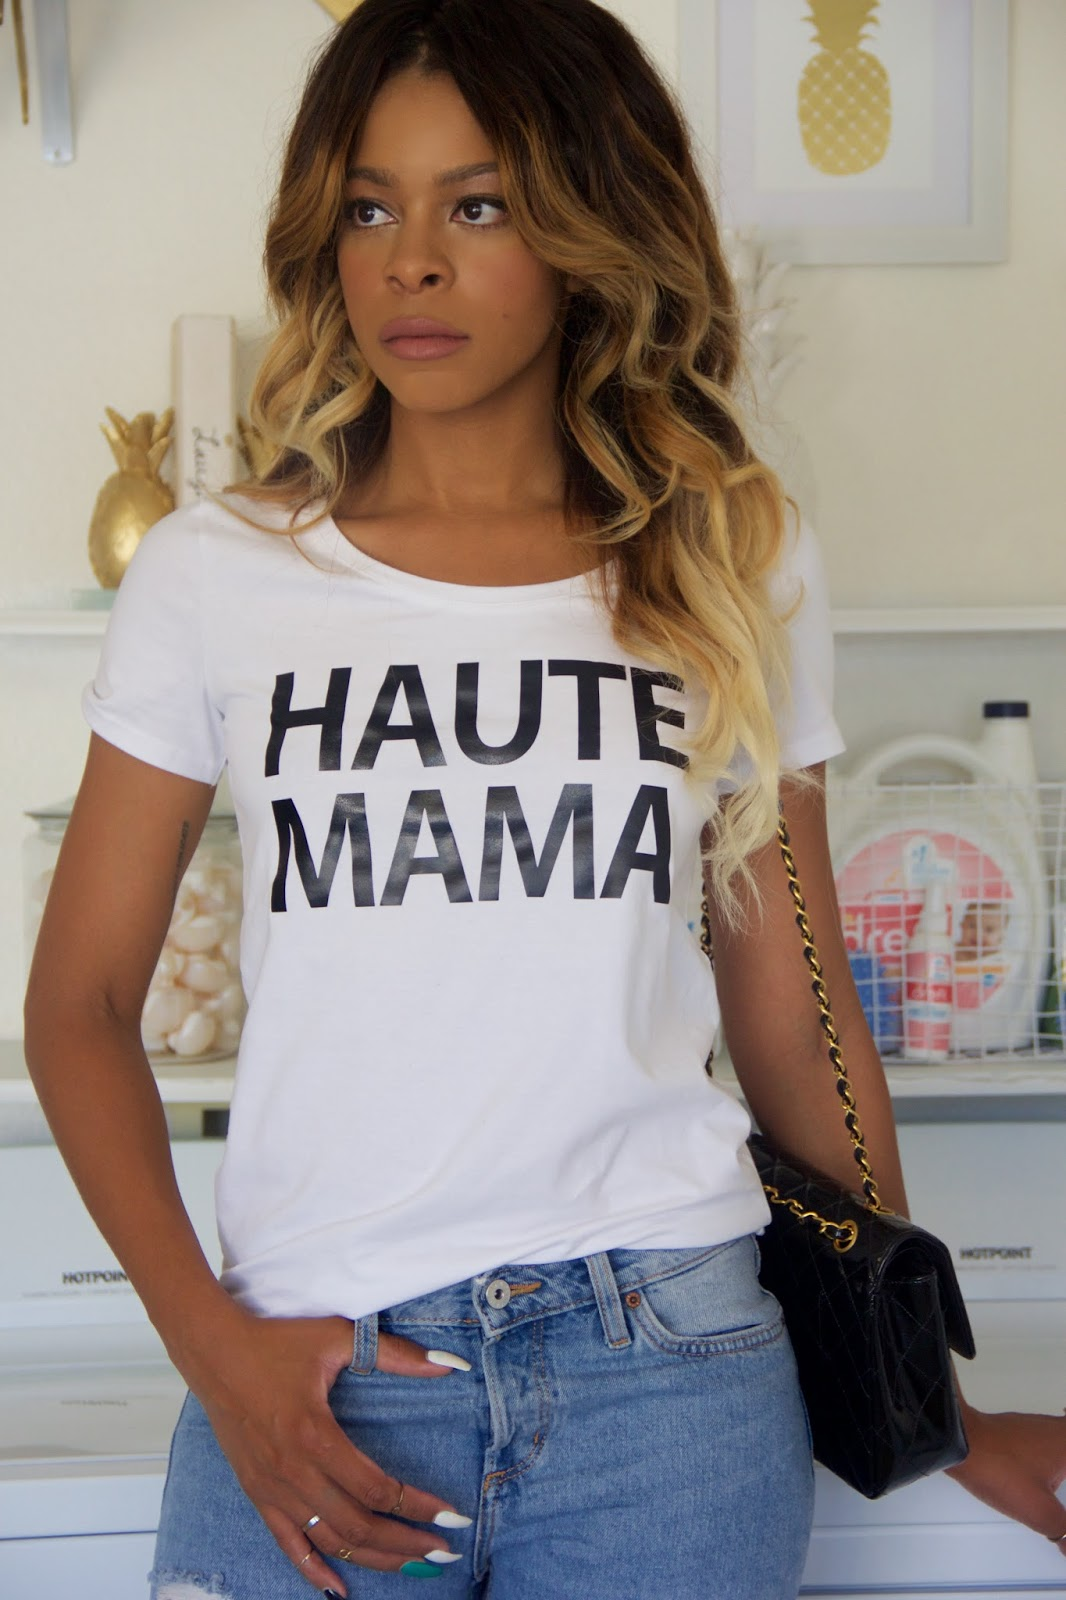 shop bottle blonde, haute mama t shirt, allthingsslim, all things slim, mommy t shirts, maternity t shirts